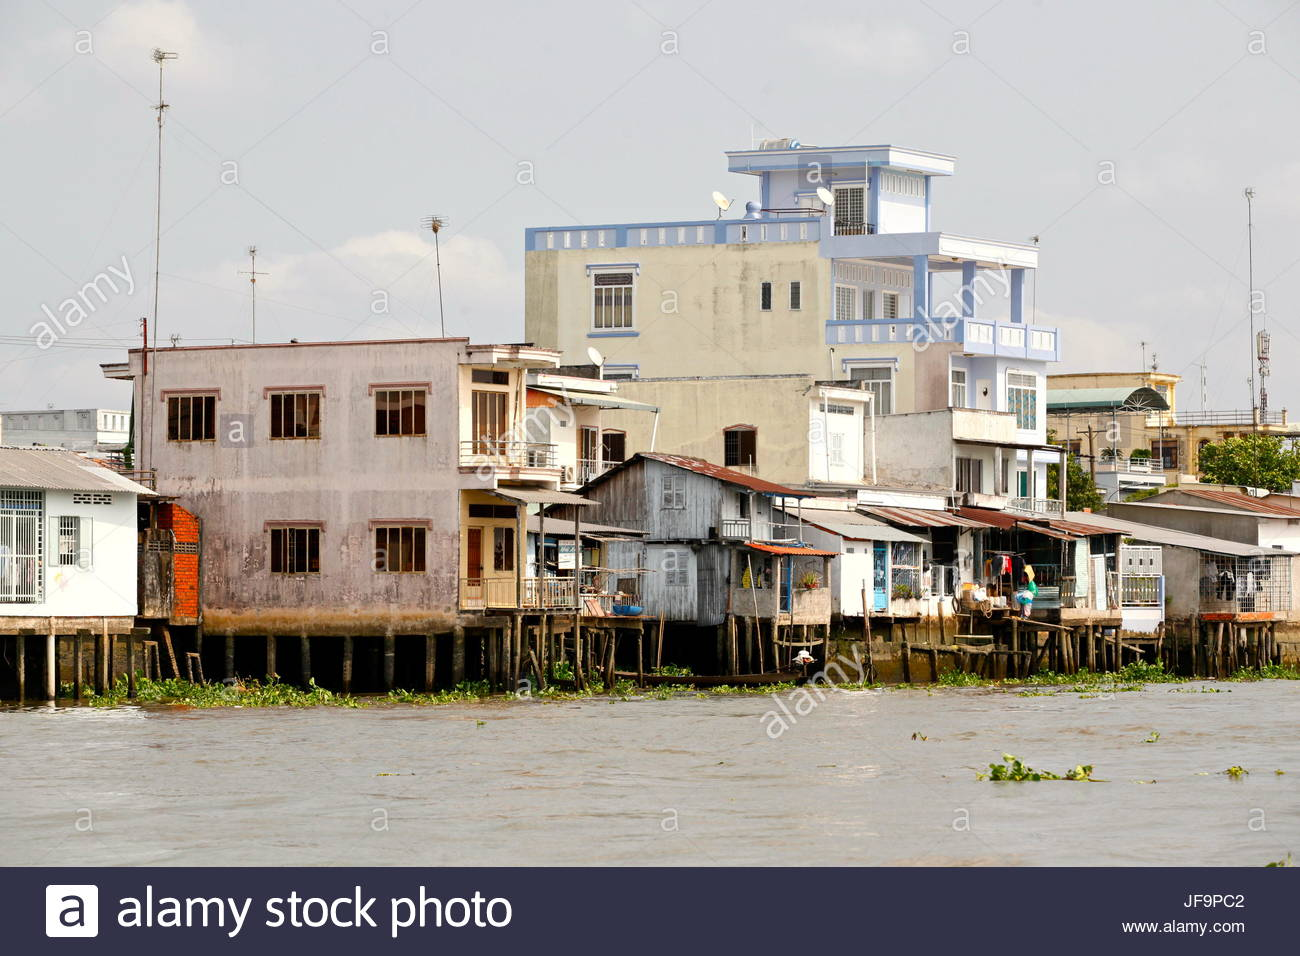 Overwater homes along the Mekong River. - Stock Image